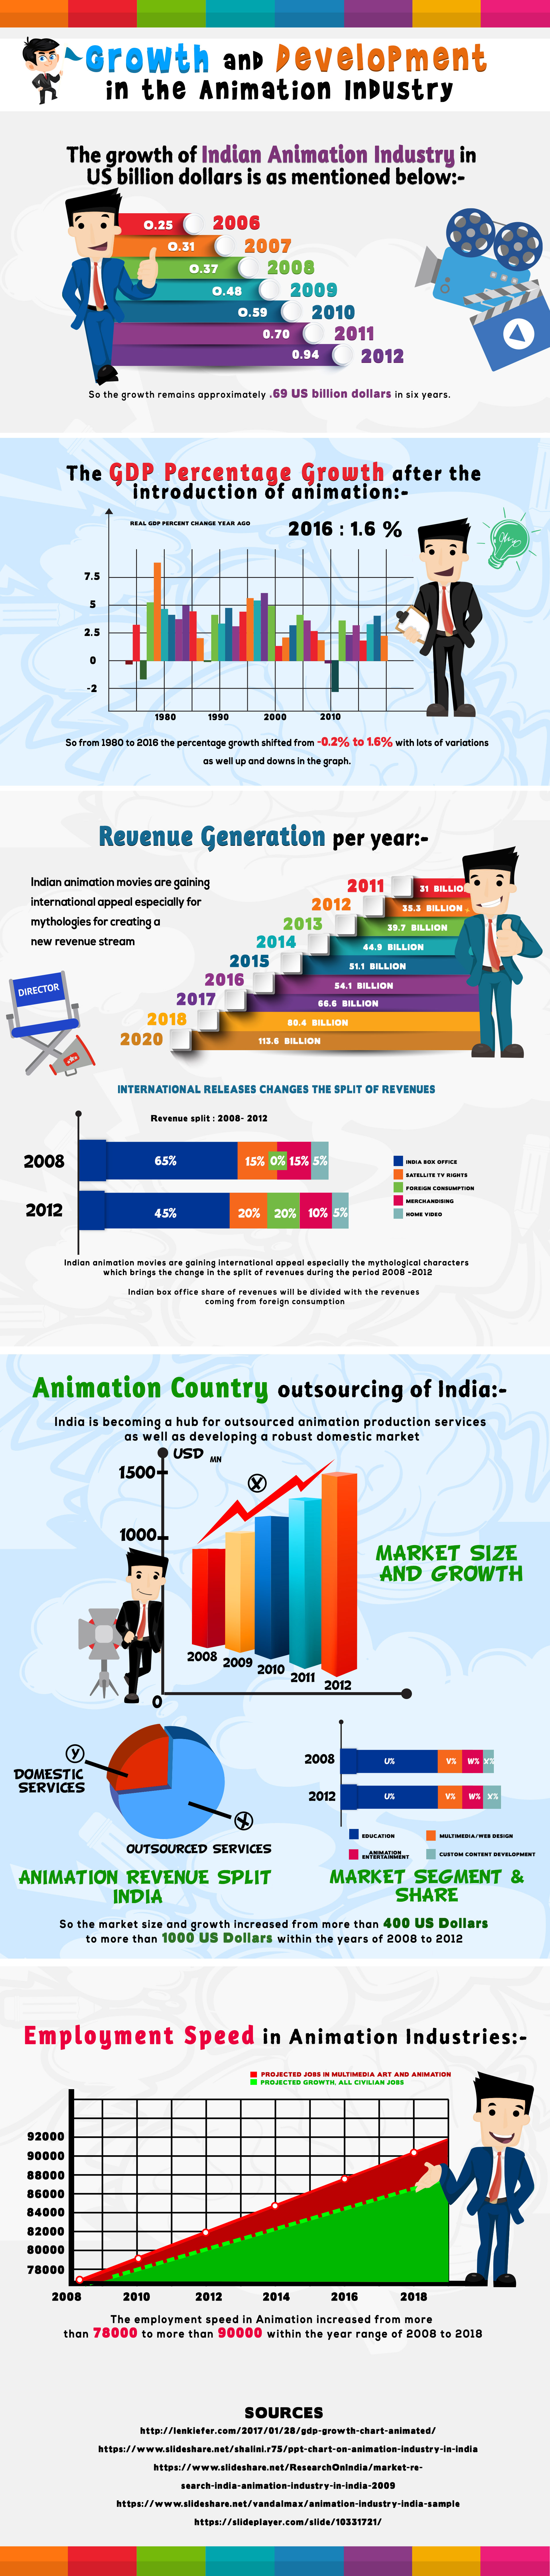 Growth and development in the animation industry